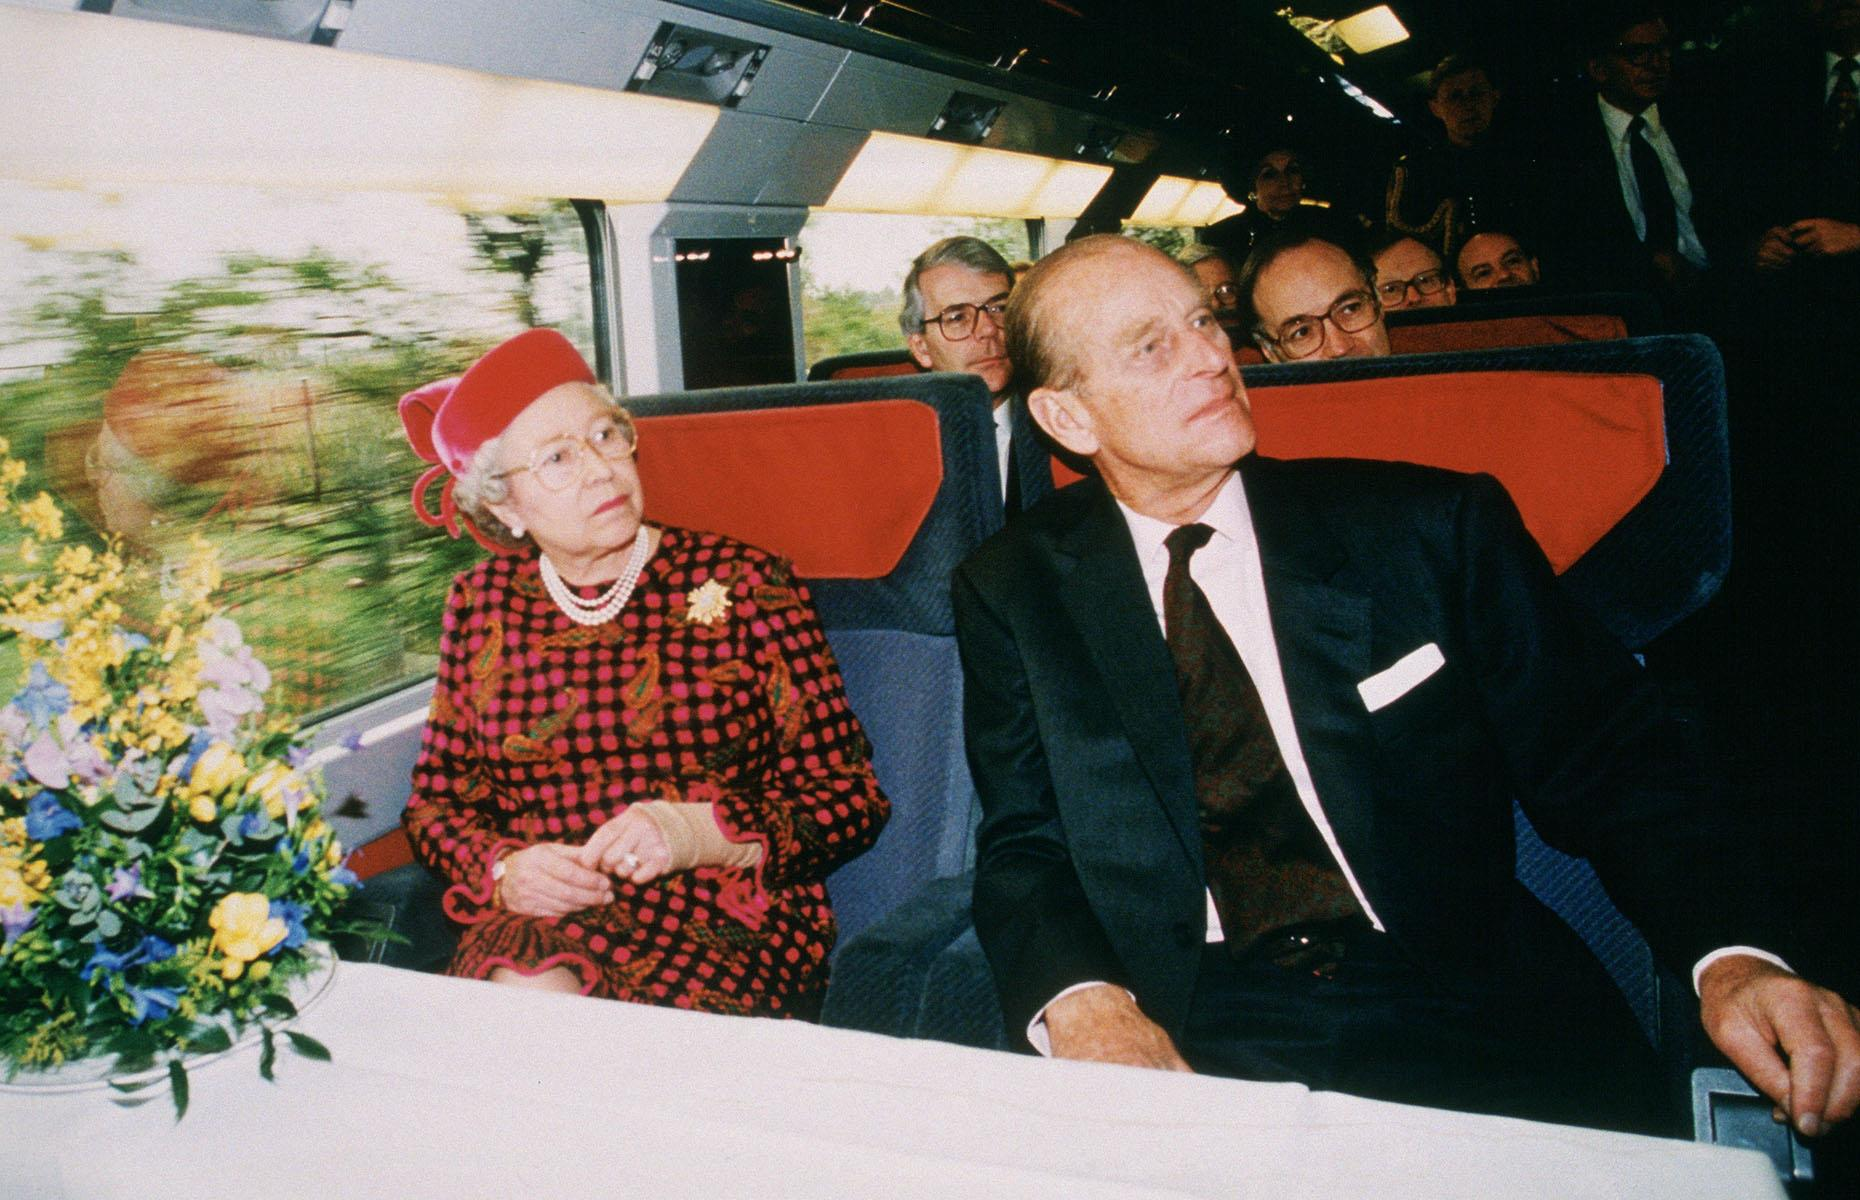 Slide 30 of 32: The dream of a tunnel and a train connecting mainland Europe and the UK finally came true in 1994 when both the Eurotunnel and Eurostar were launched. Here, Queen Elizabeth II and Prince Philip are joined by Prime Minister John Major (sitting behind the Queen) aboard a Eurostar train on the inauguration of the tunnel on 6 May 1994.